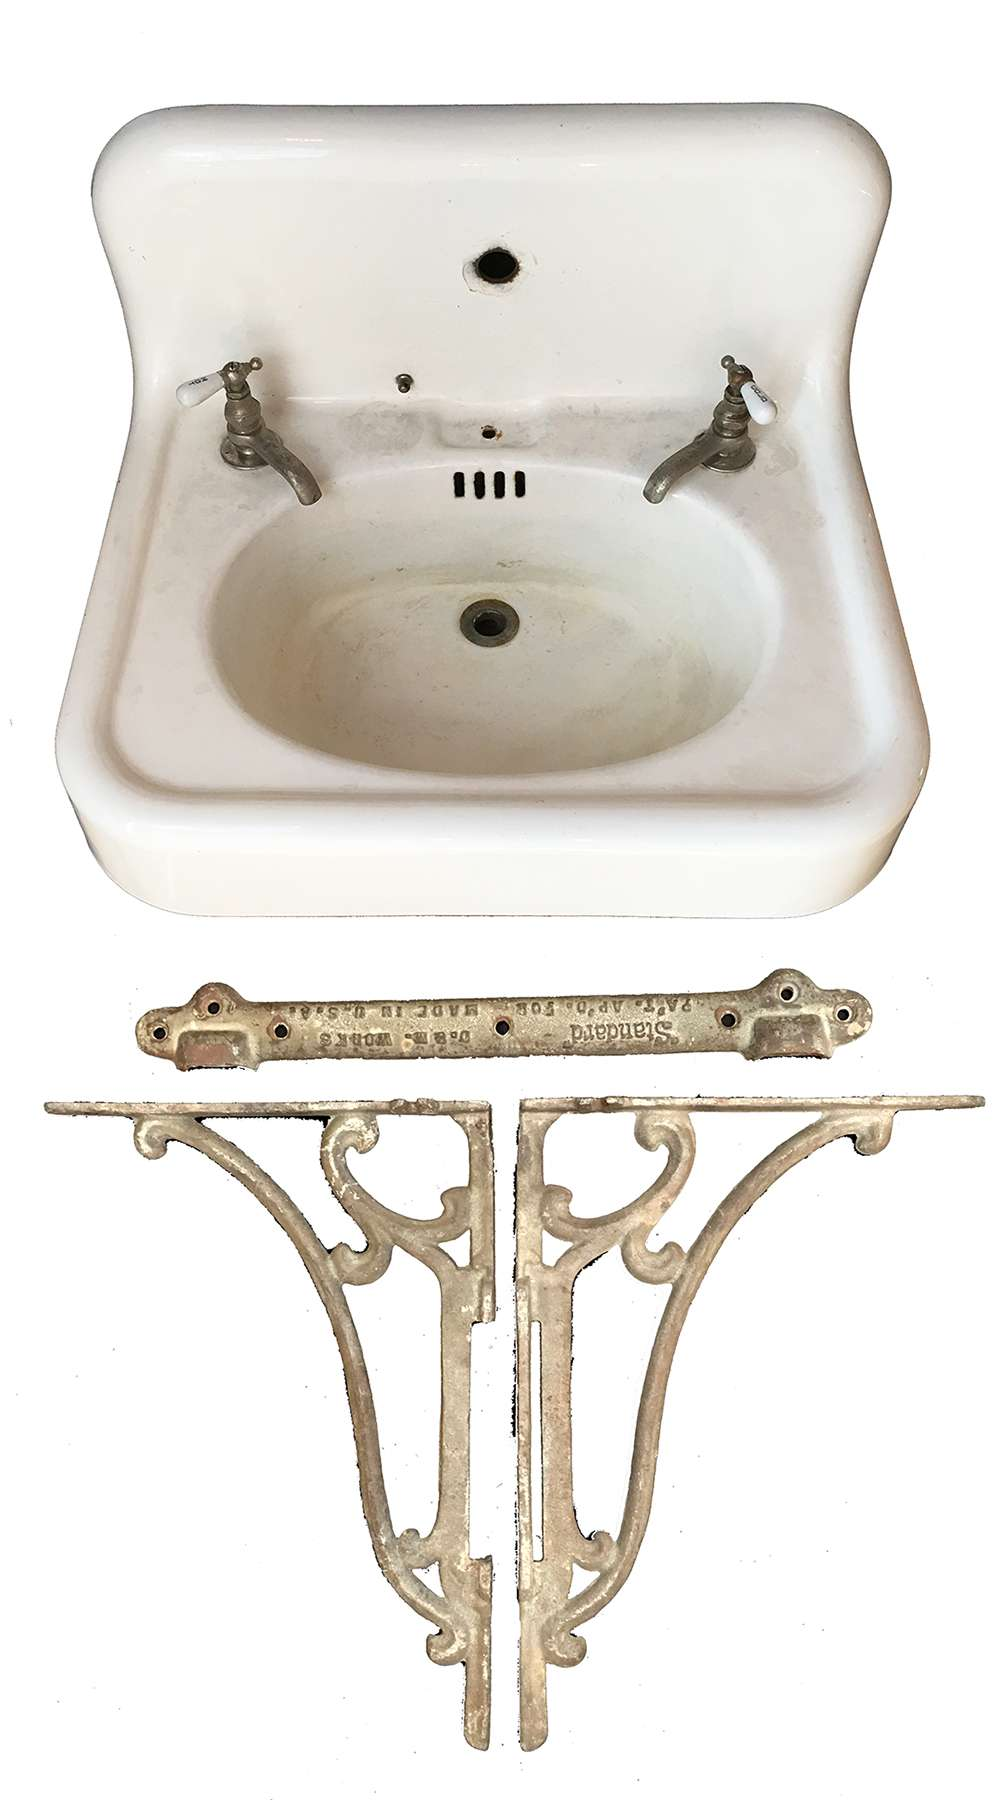 antique american standard wall hung sink with decorative brackets and high backsplash